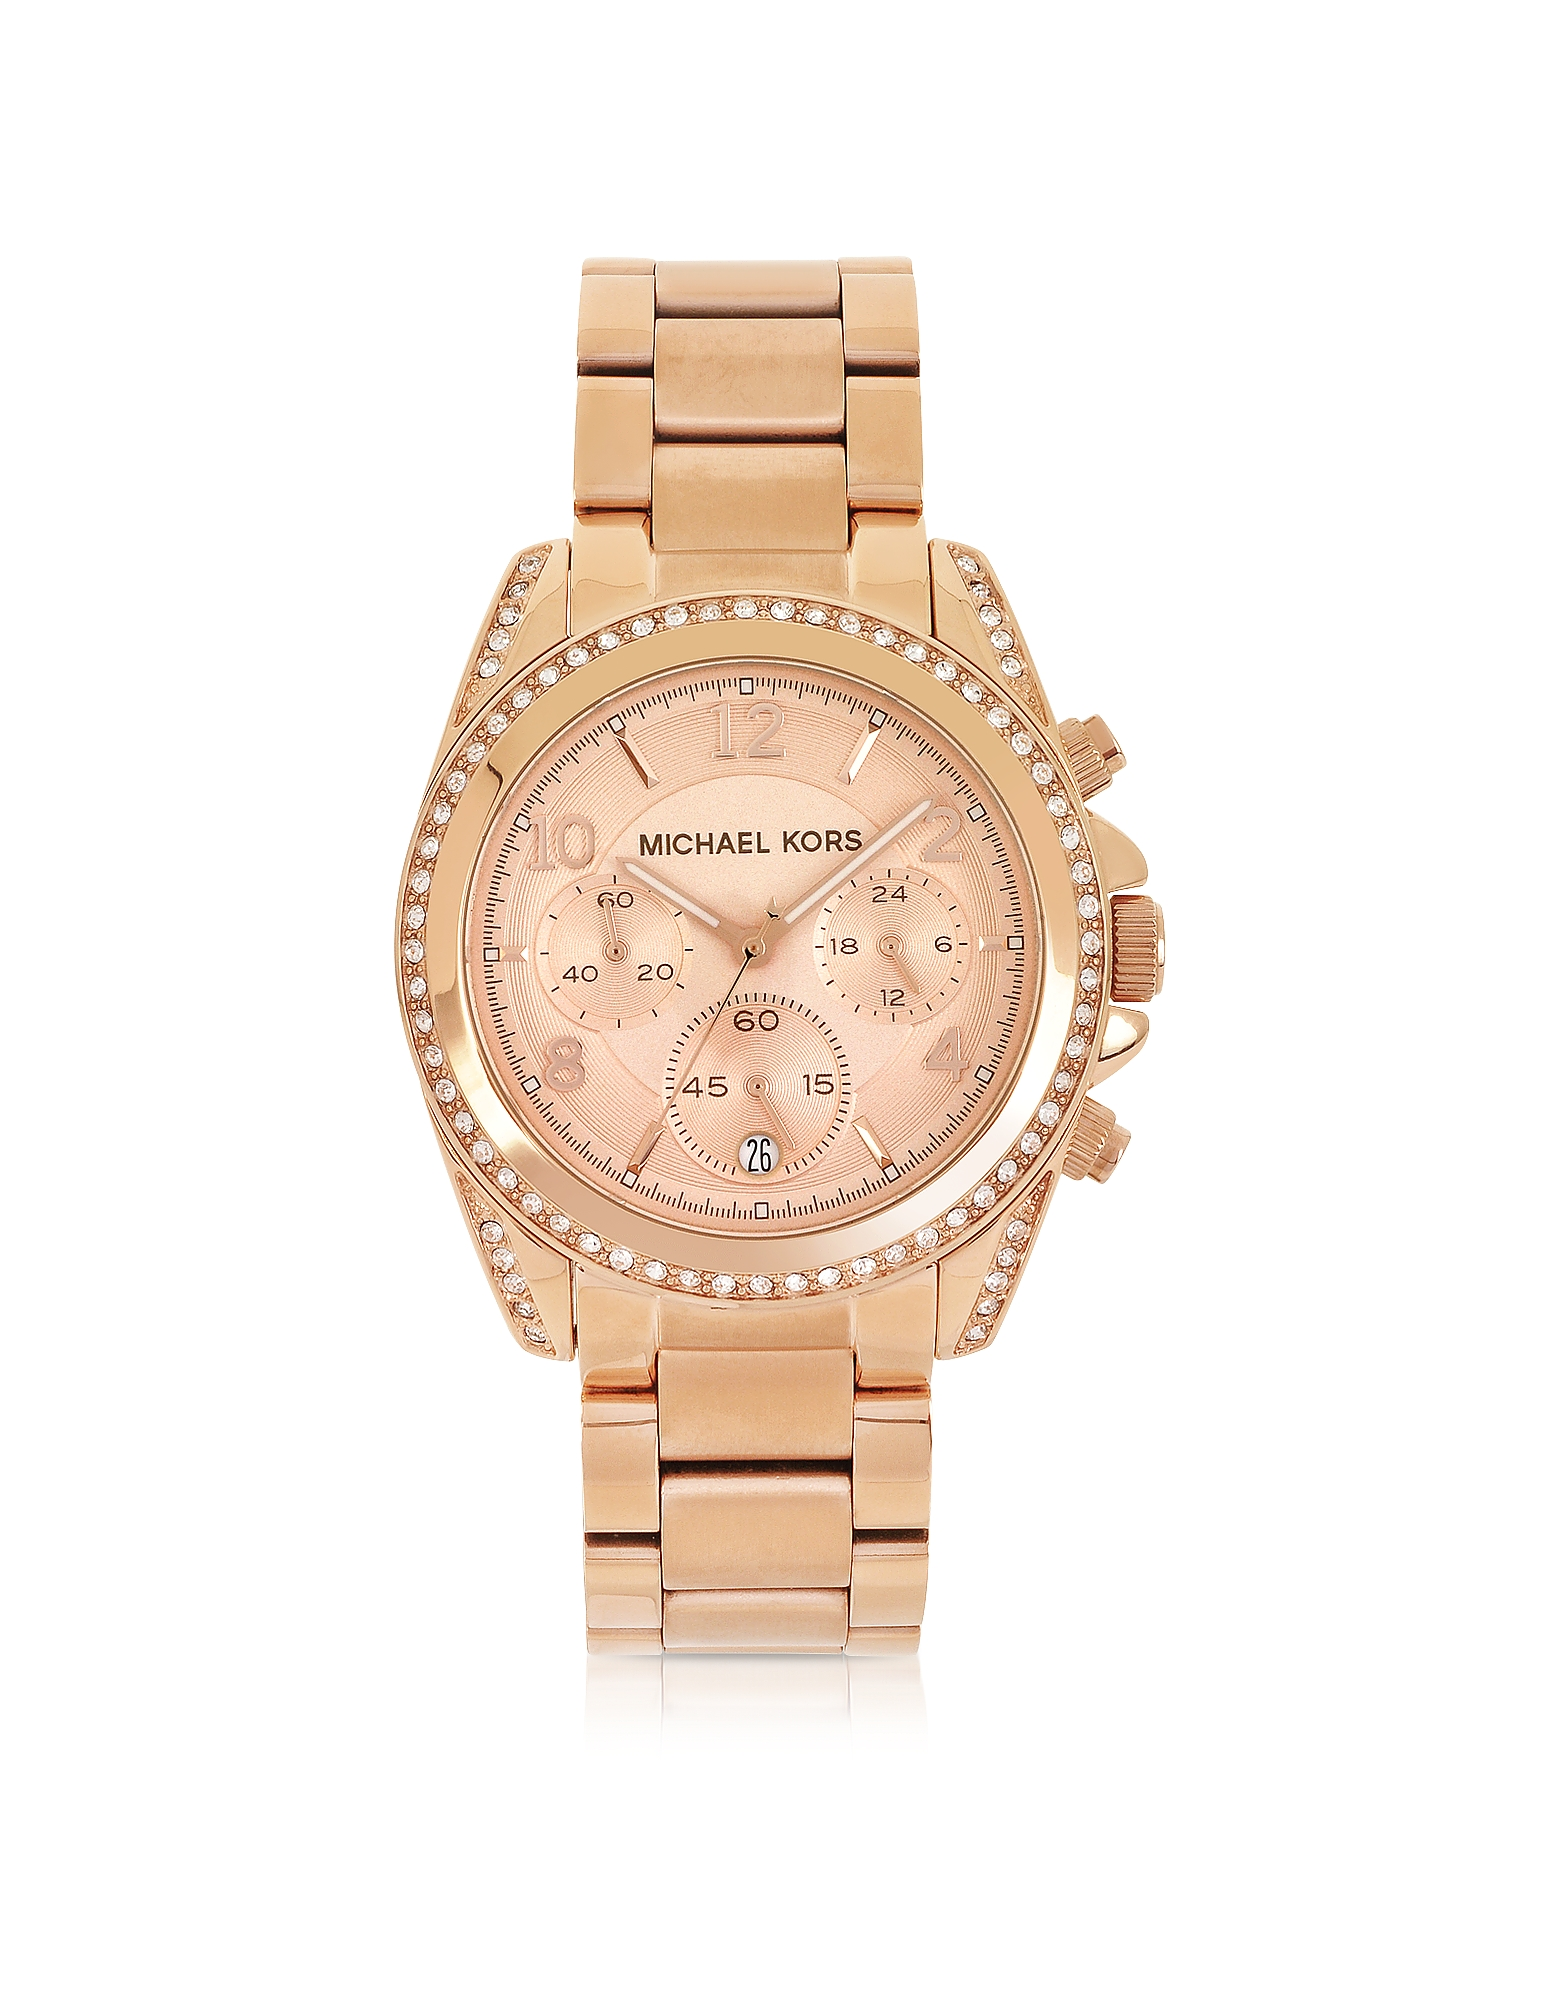 Michael Kors Women's Watches, Rose Golden Stainless Steel Blair Chronograph Glitz Women's Watch